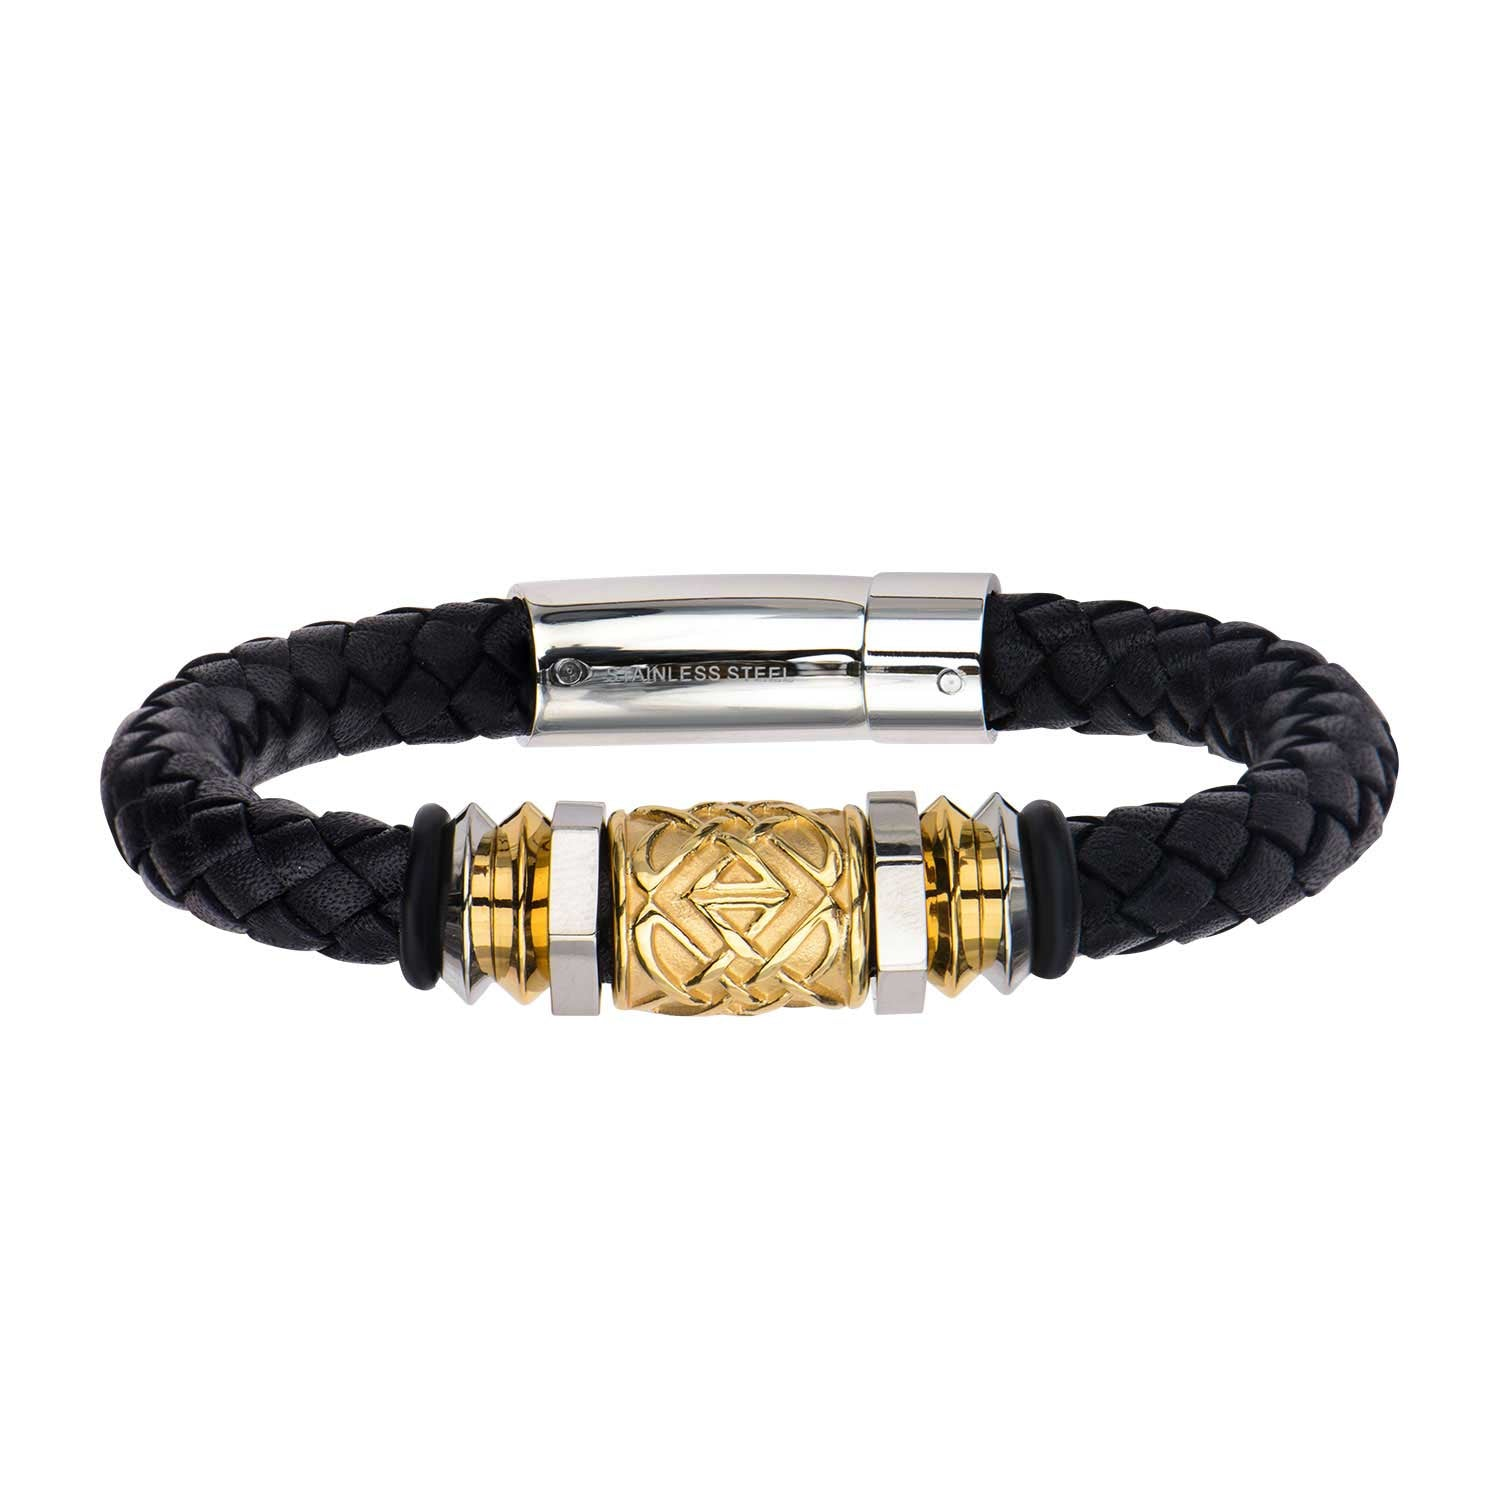 Steel and Gold Plated Bead in Black Braided Leather Bracelet